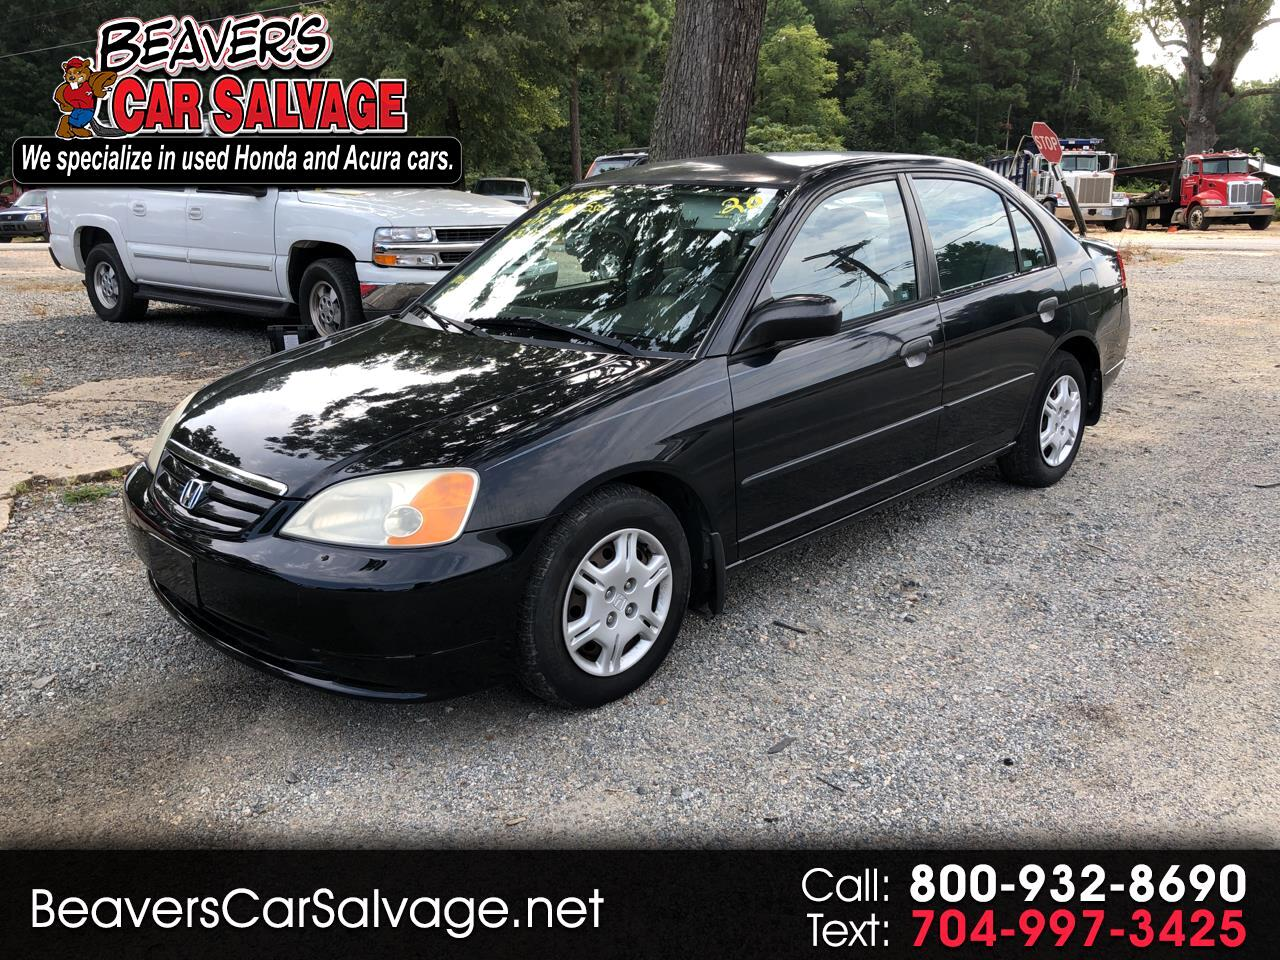 2001 Honda Civic 4dr Sdn DX Manual